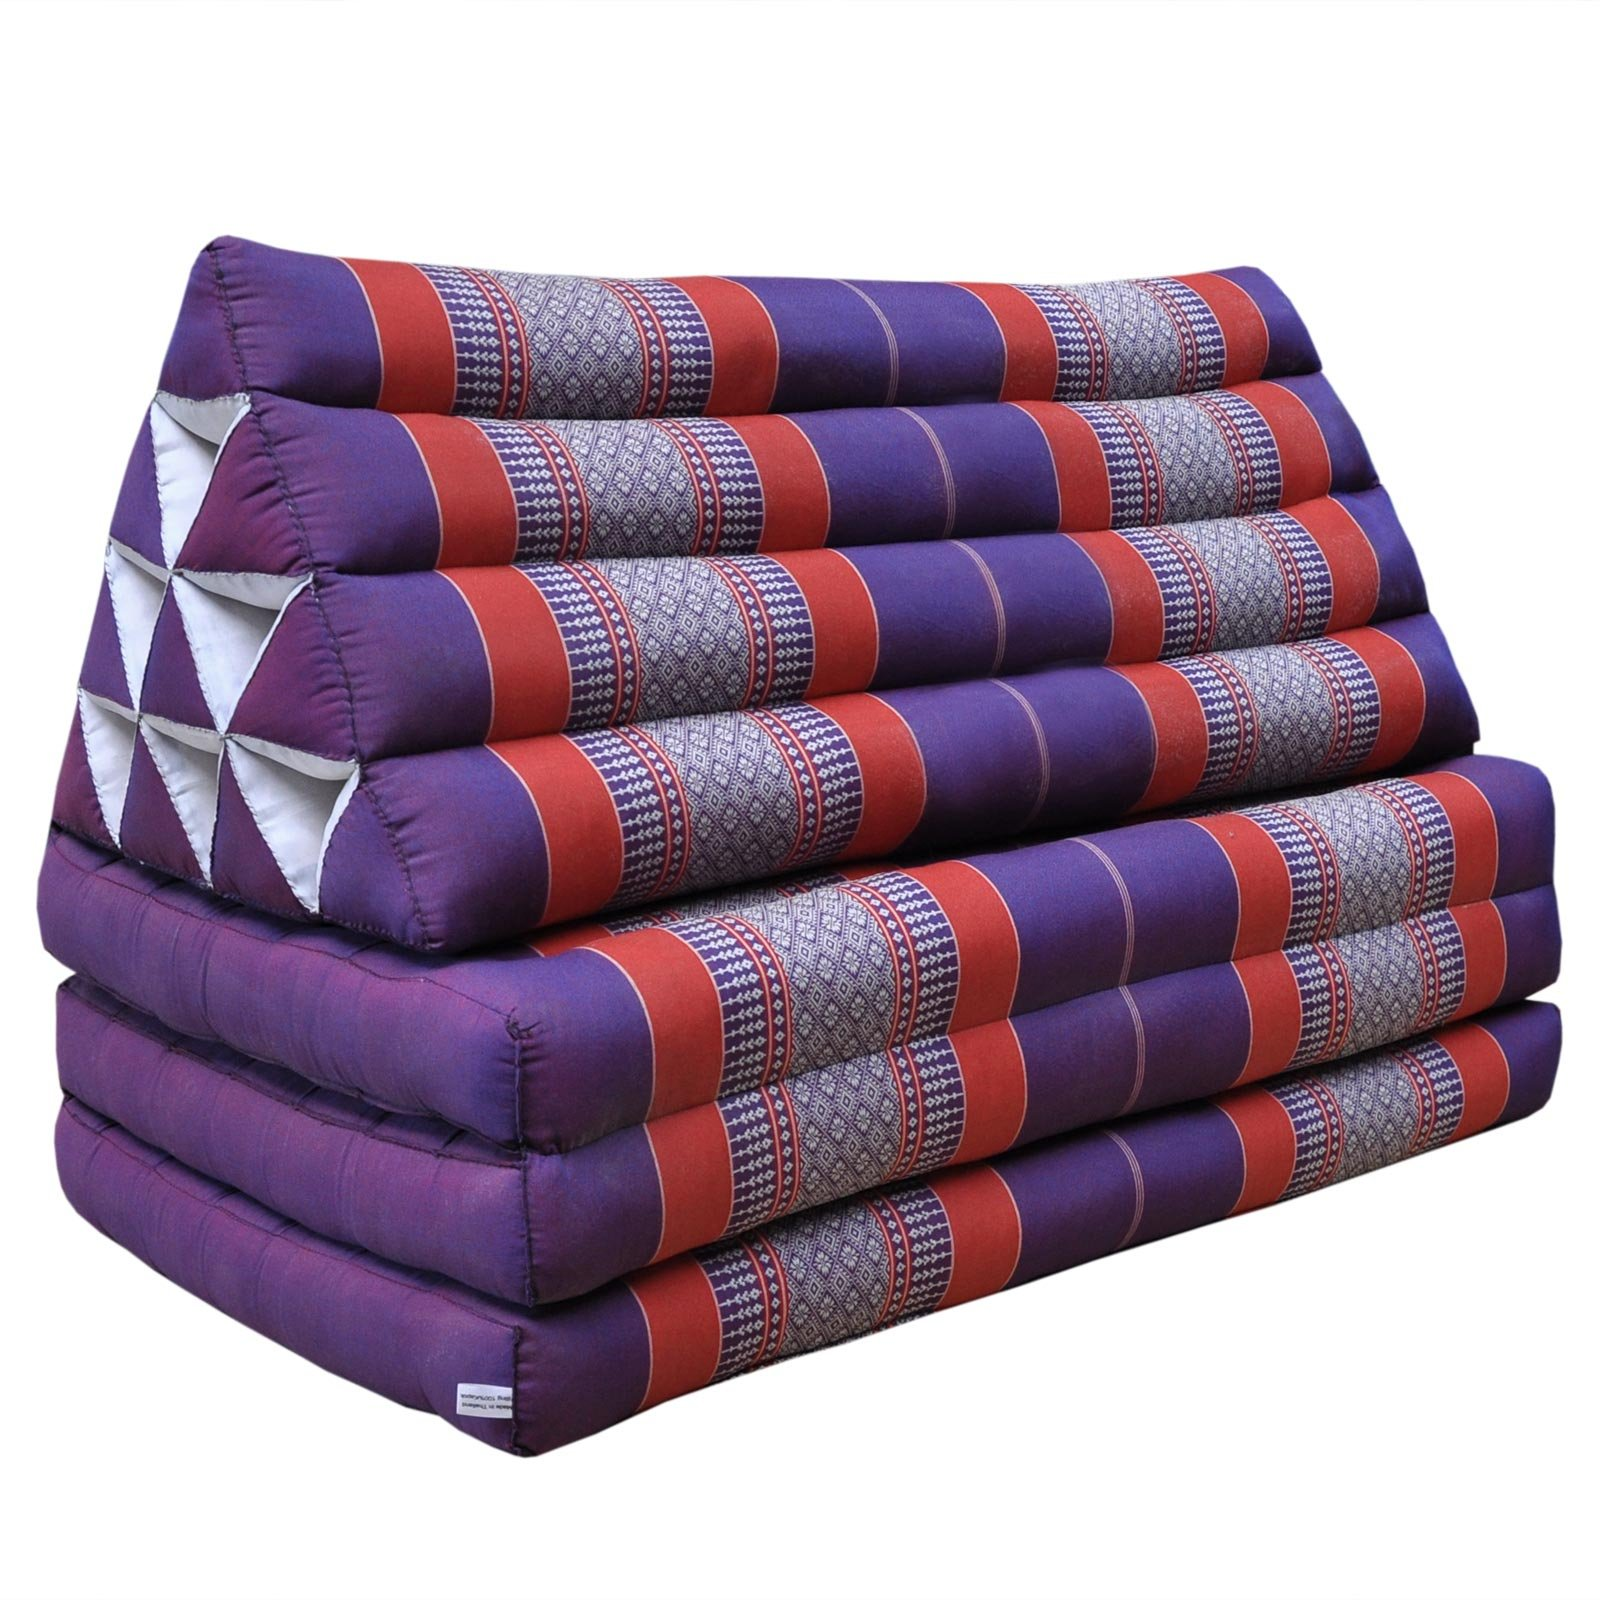 Thai triangle cushion/mattress XXL, with 3 folding seats,sofa, relaxation, beach, pool, meditation, yoga, made in Thailand Violet/Red (81518) by Wilai GmbH